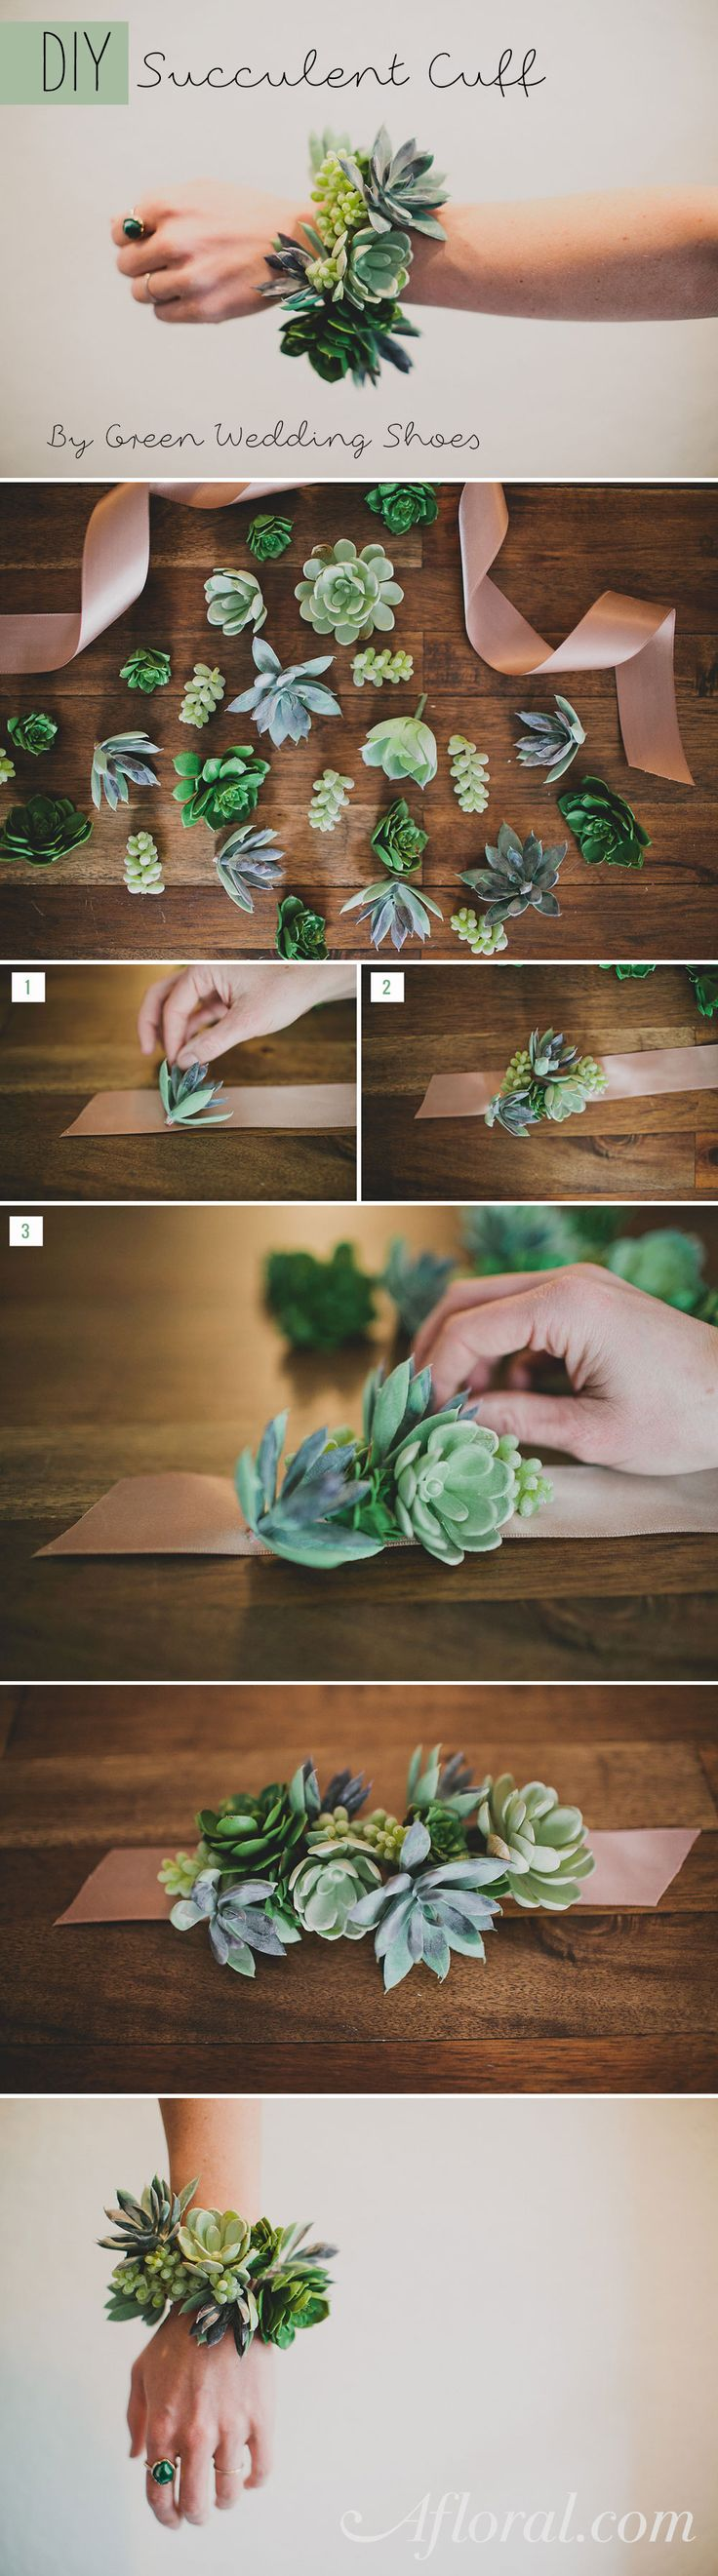 Succulent jewelry and succulent corsages are all the rage! Make your own with this simple diy and artificial succulents from afloral.com. #afloral Design by Green Wedding Shoes